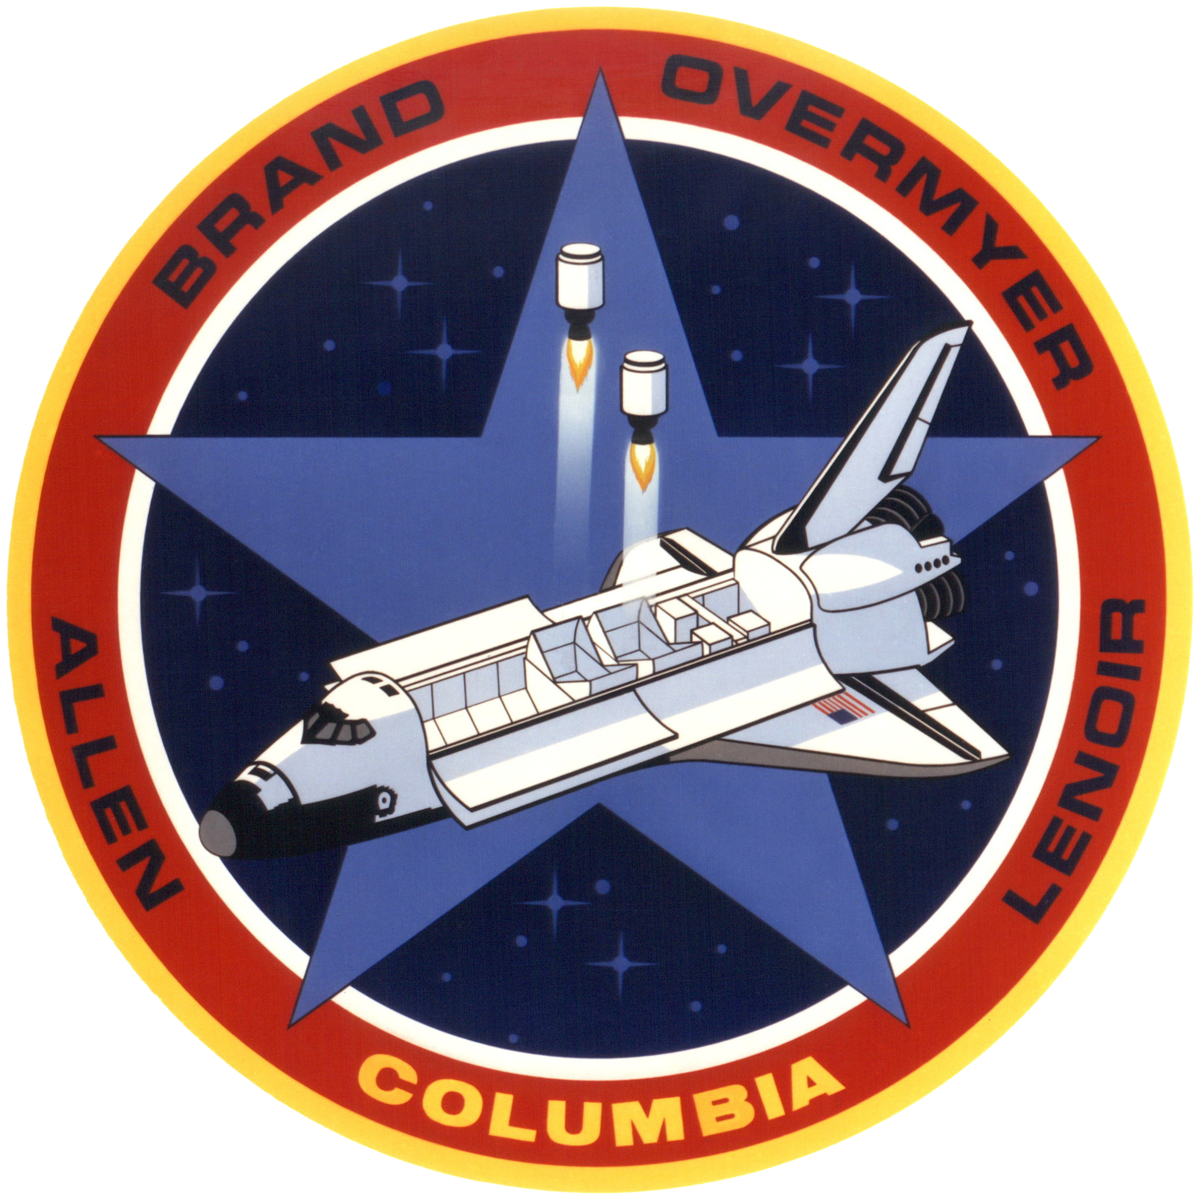 space shuttle columbia crew on tool time - photo #48